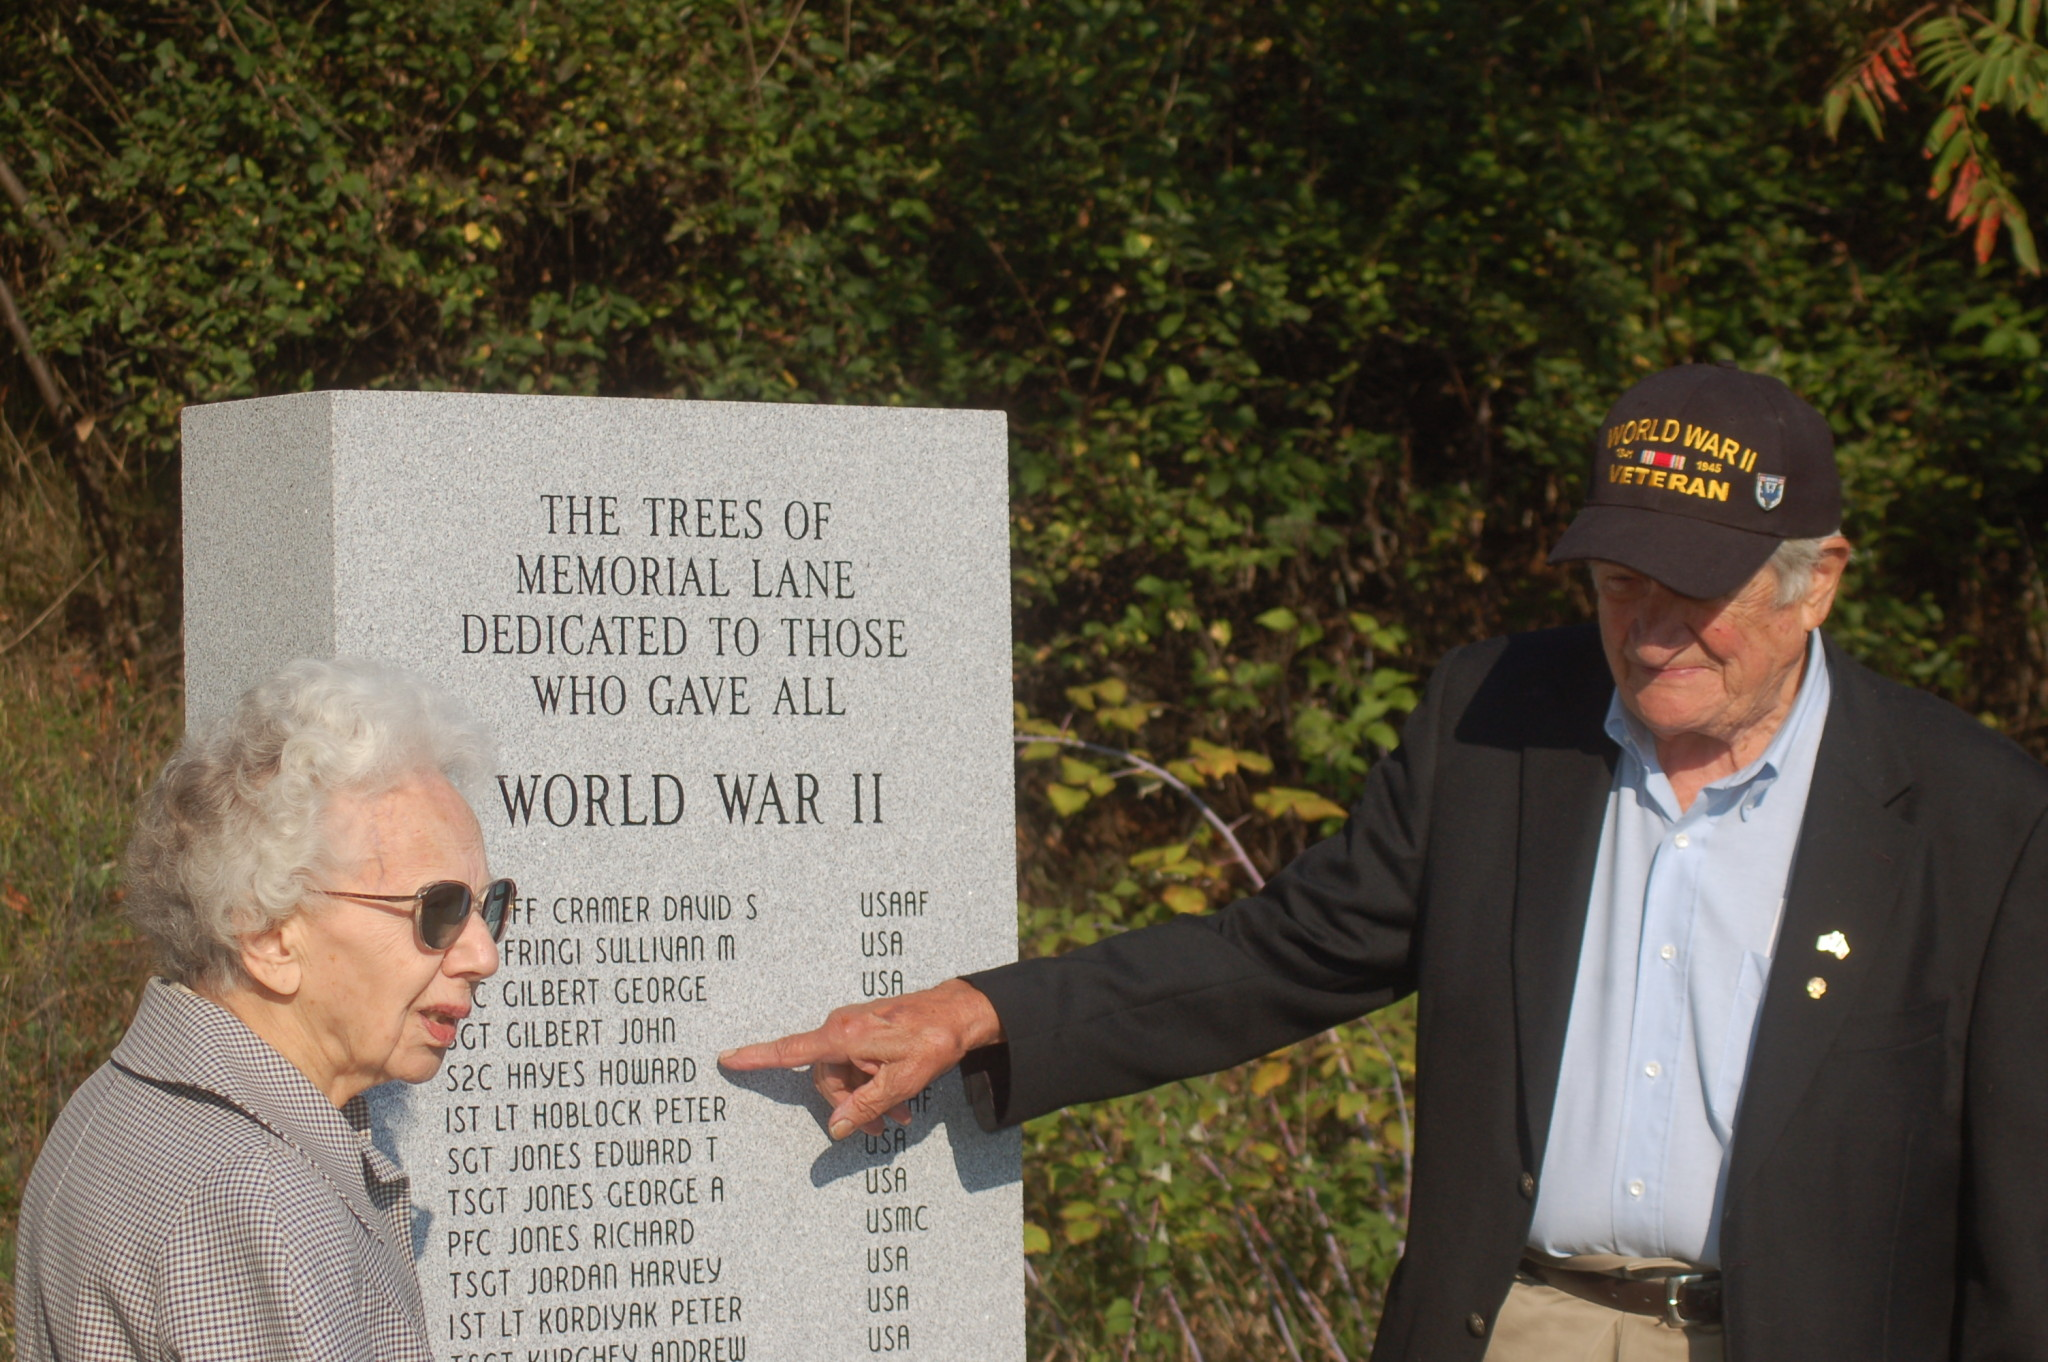 WWII Monument dedicated